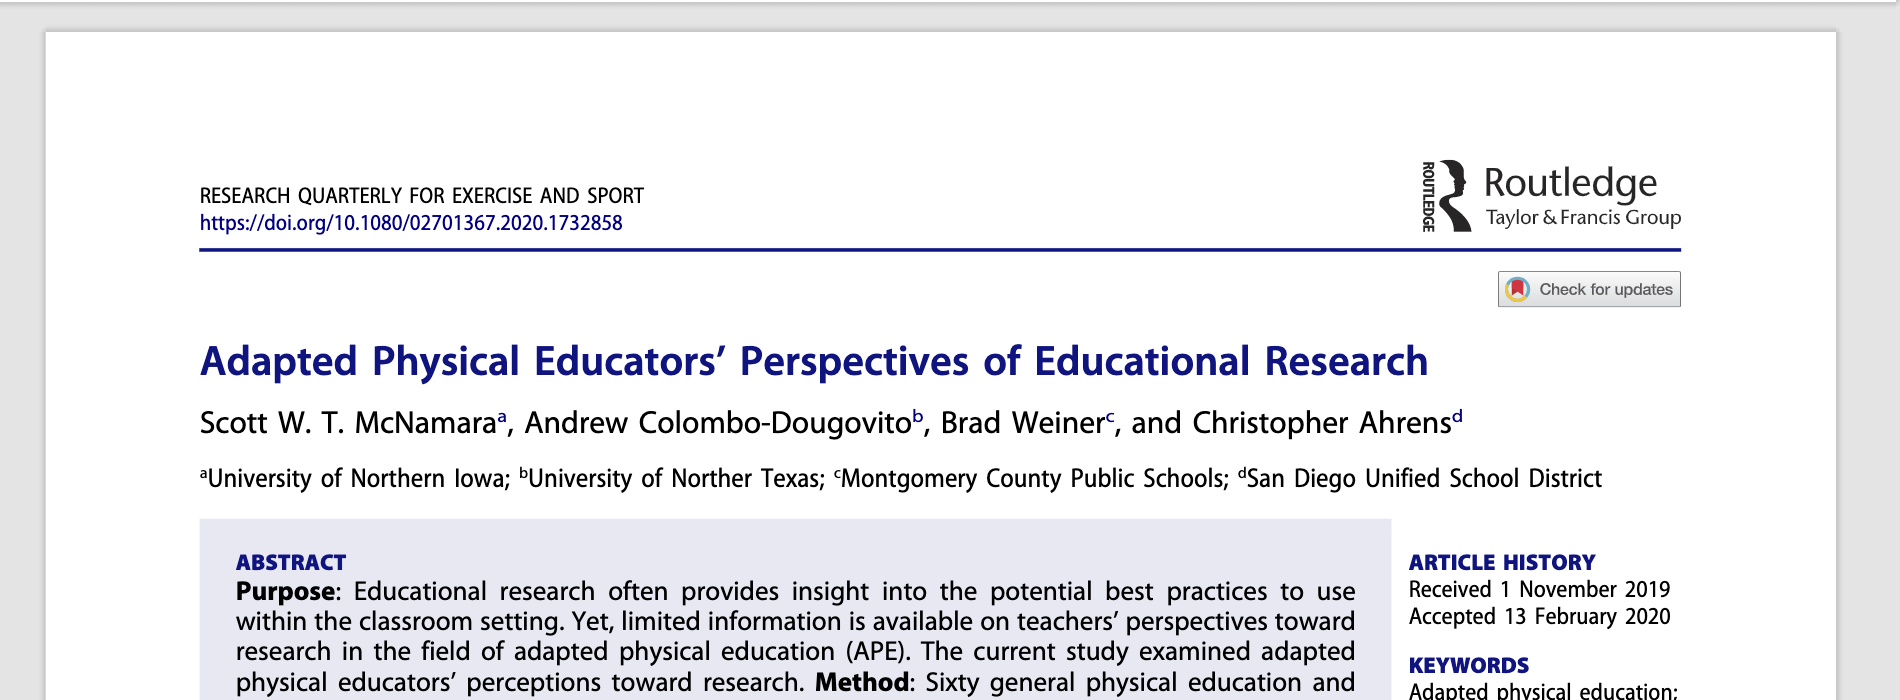 Adapted physical educators perceptions of educational research